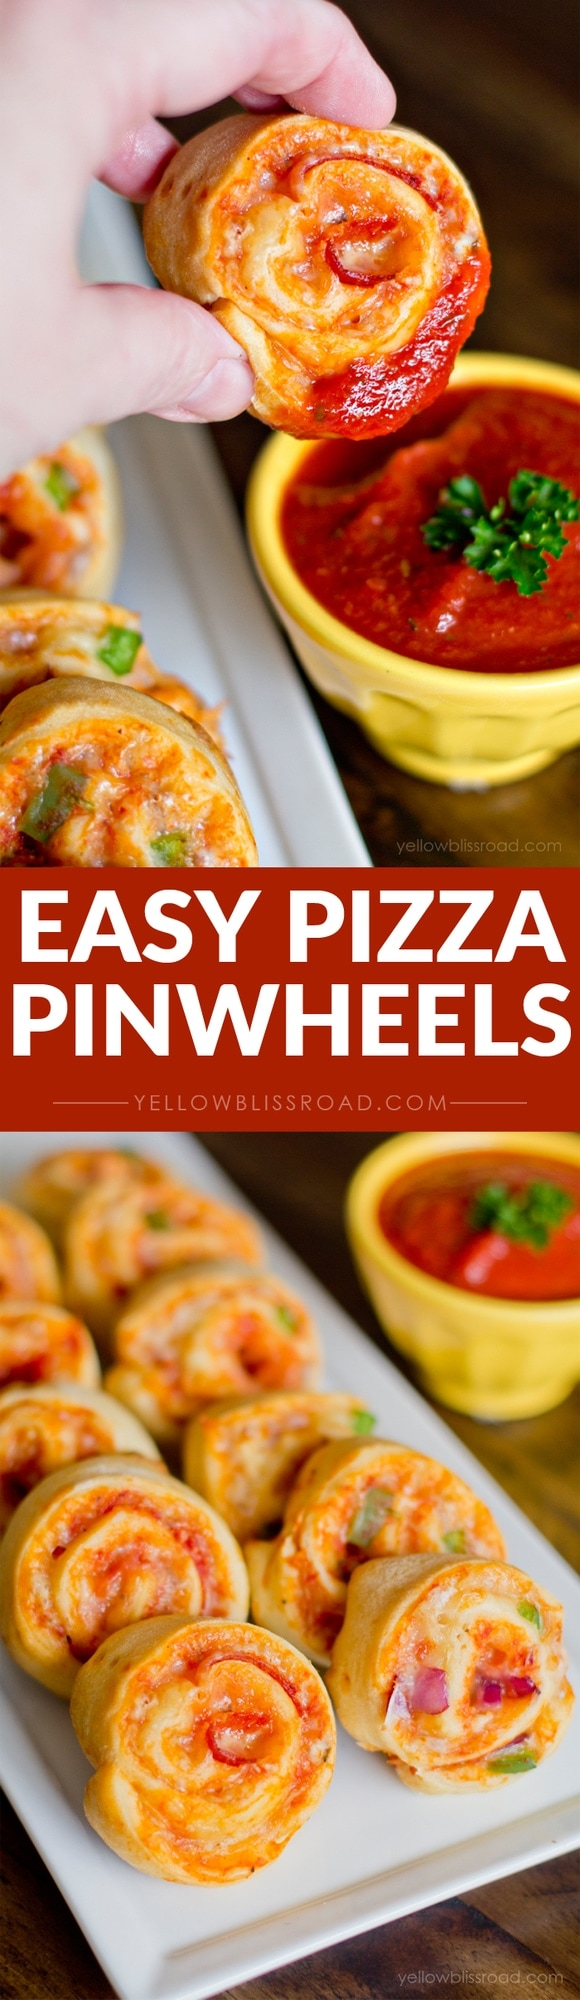 Pizza Pinwheels are so easy to make, and would be a great after school ...